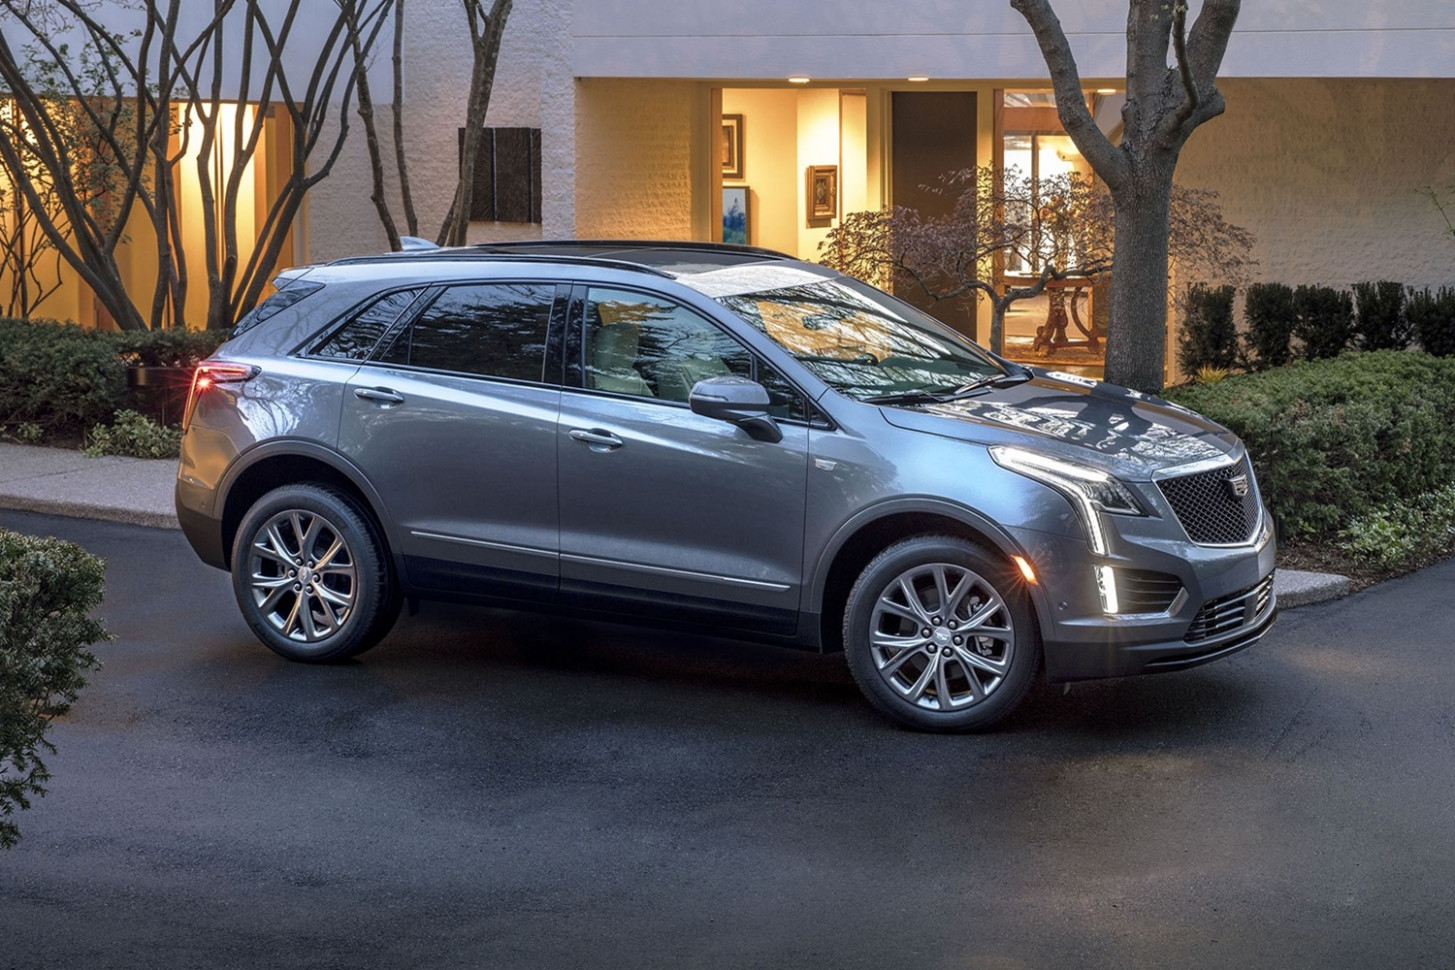 New Model and Performance 2022 Cadillac XT5